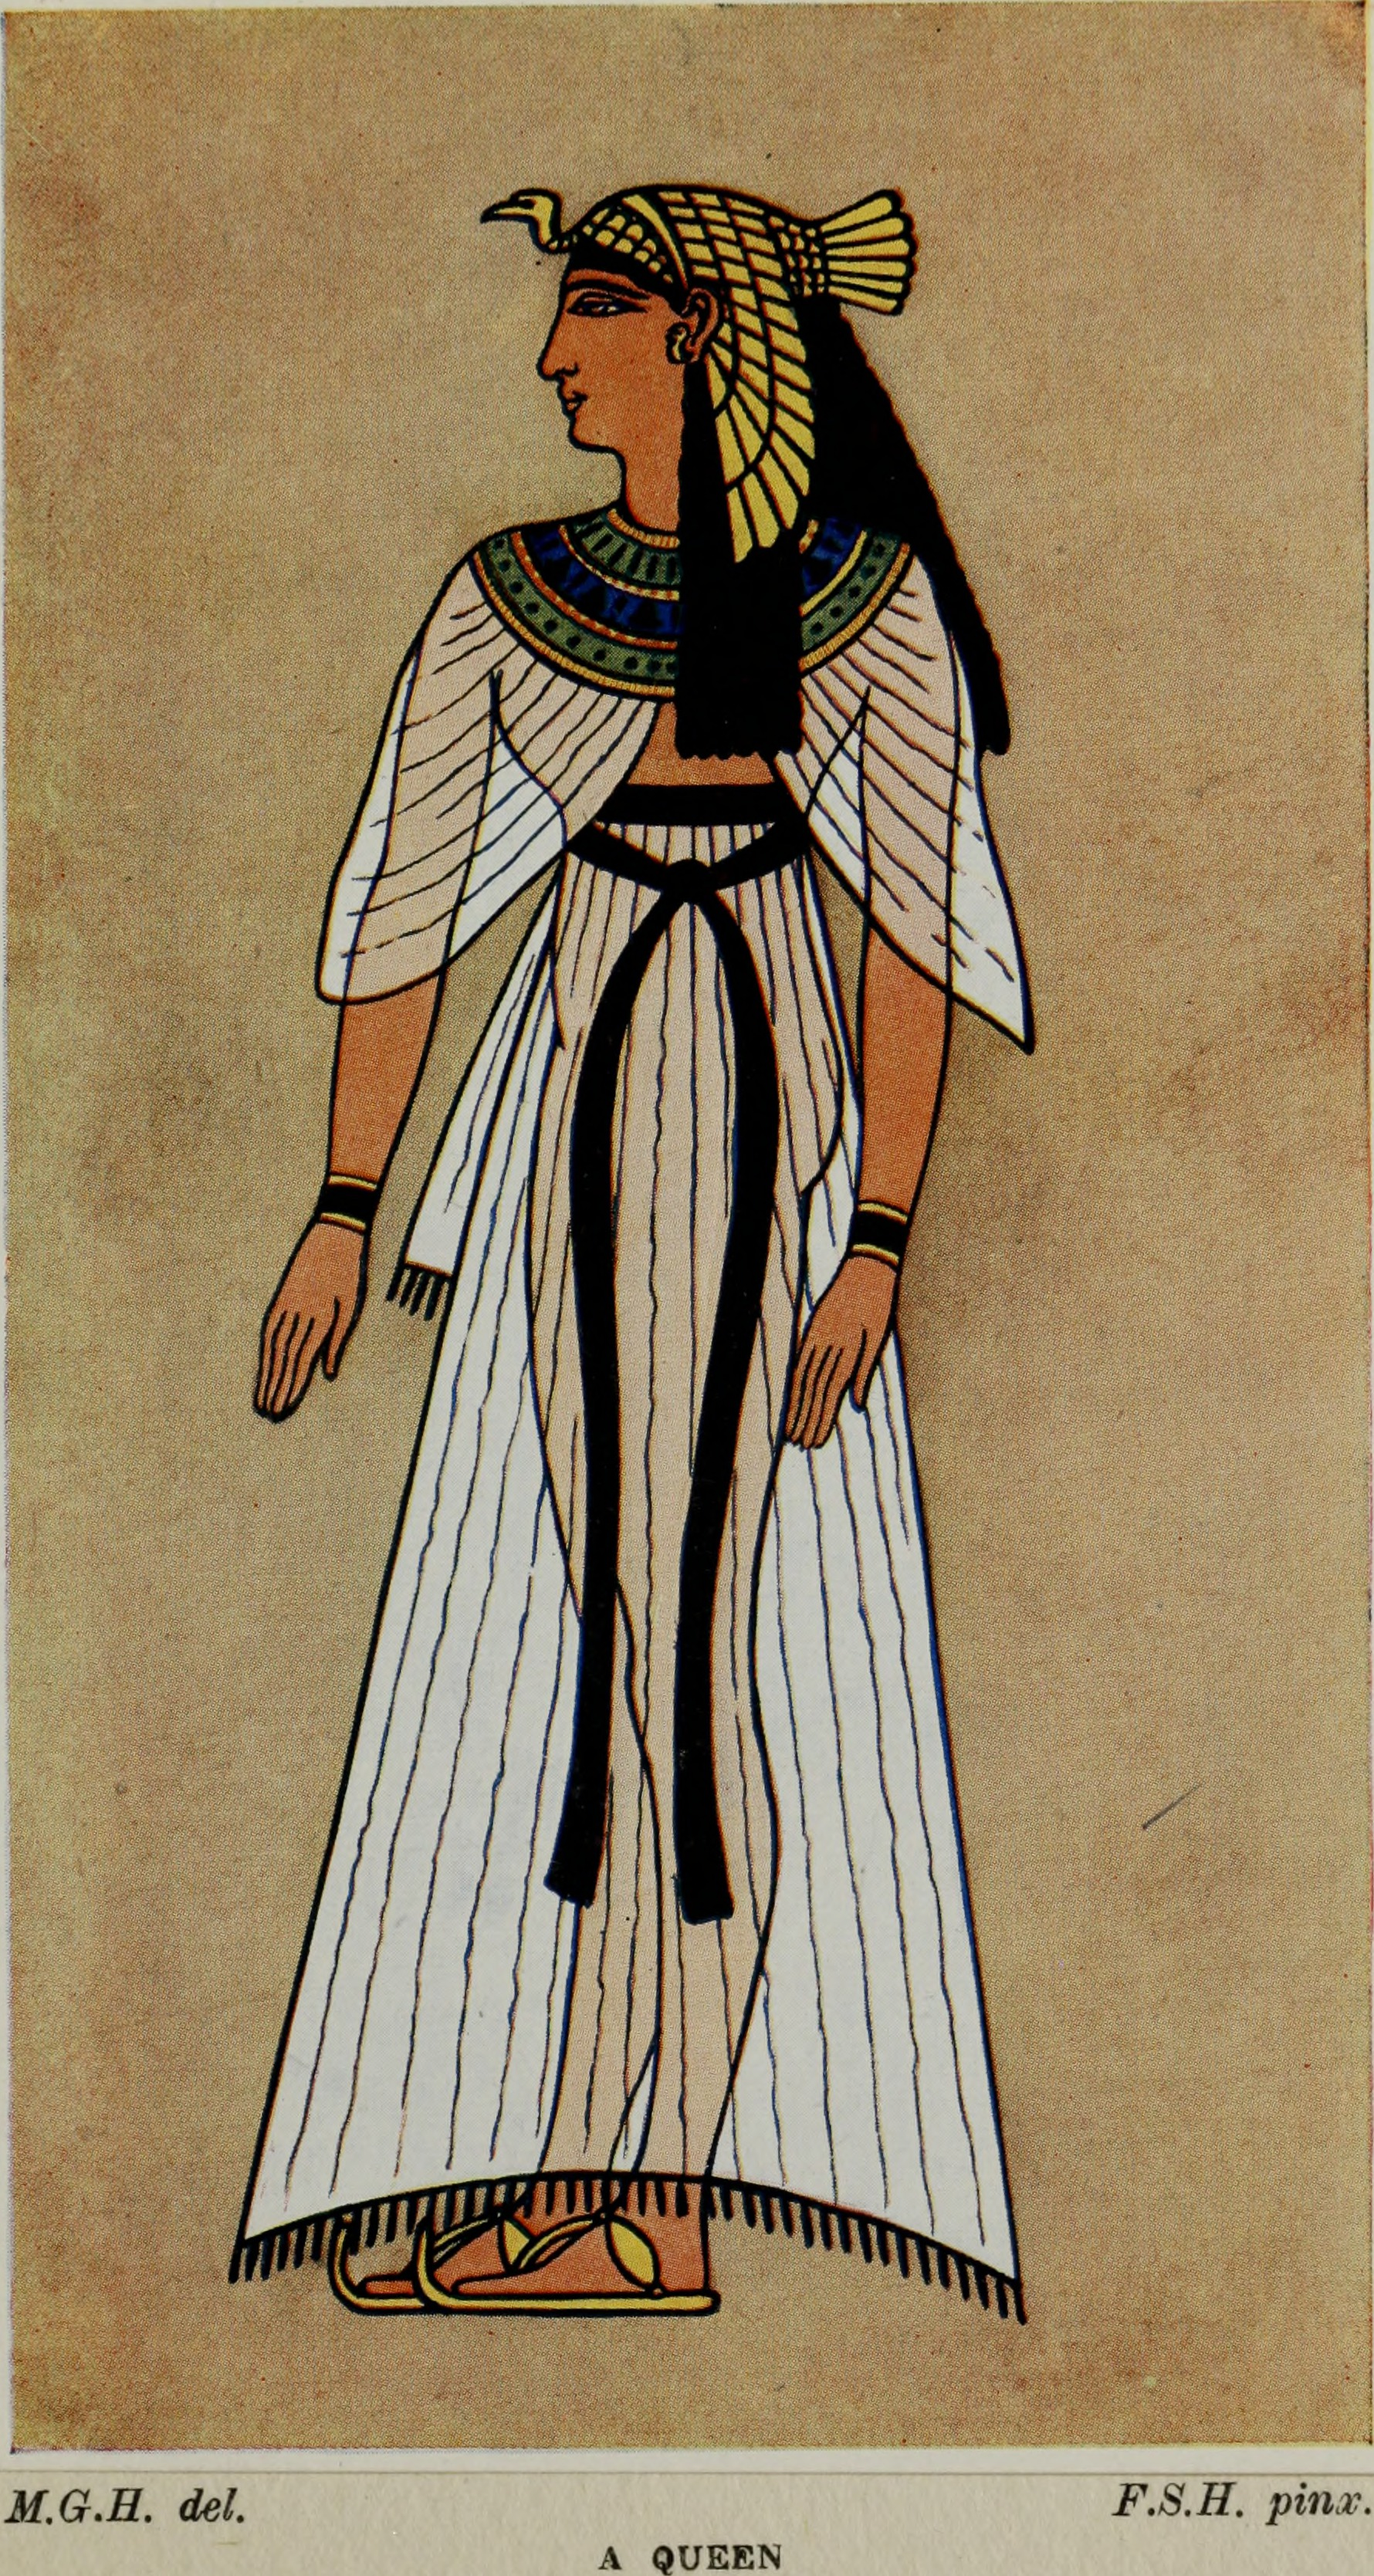 From Warrior Women to Female Pharaohs: Careers for Women in Ancient Egypt